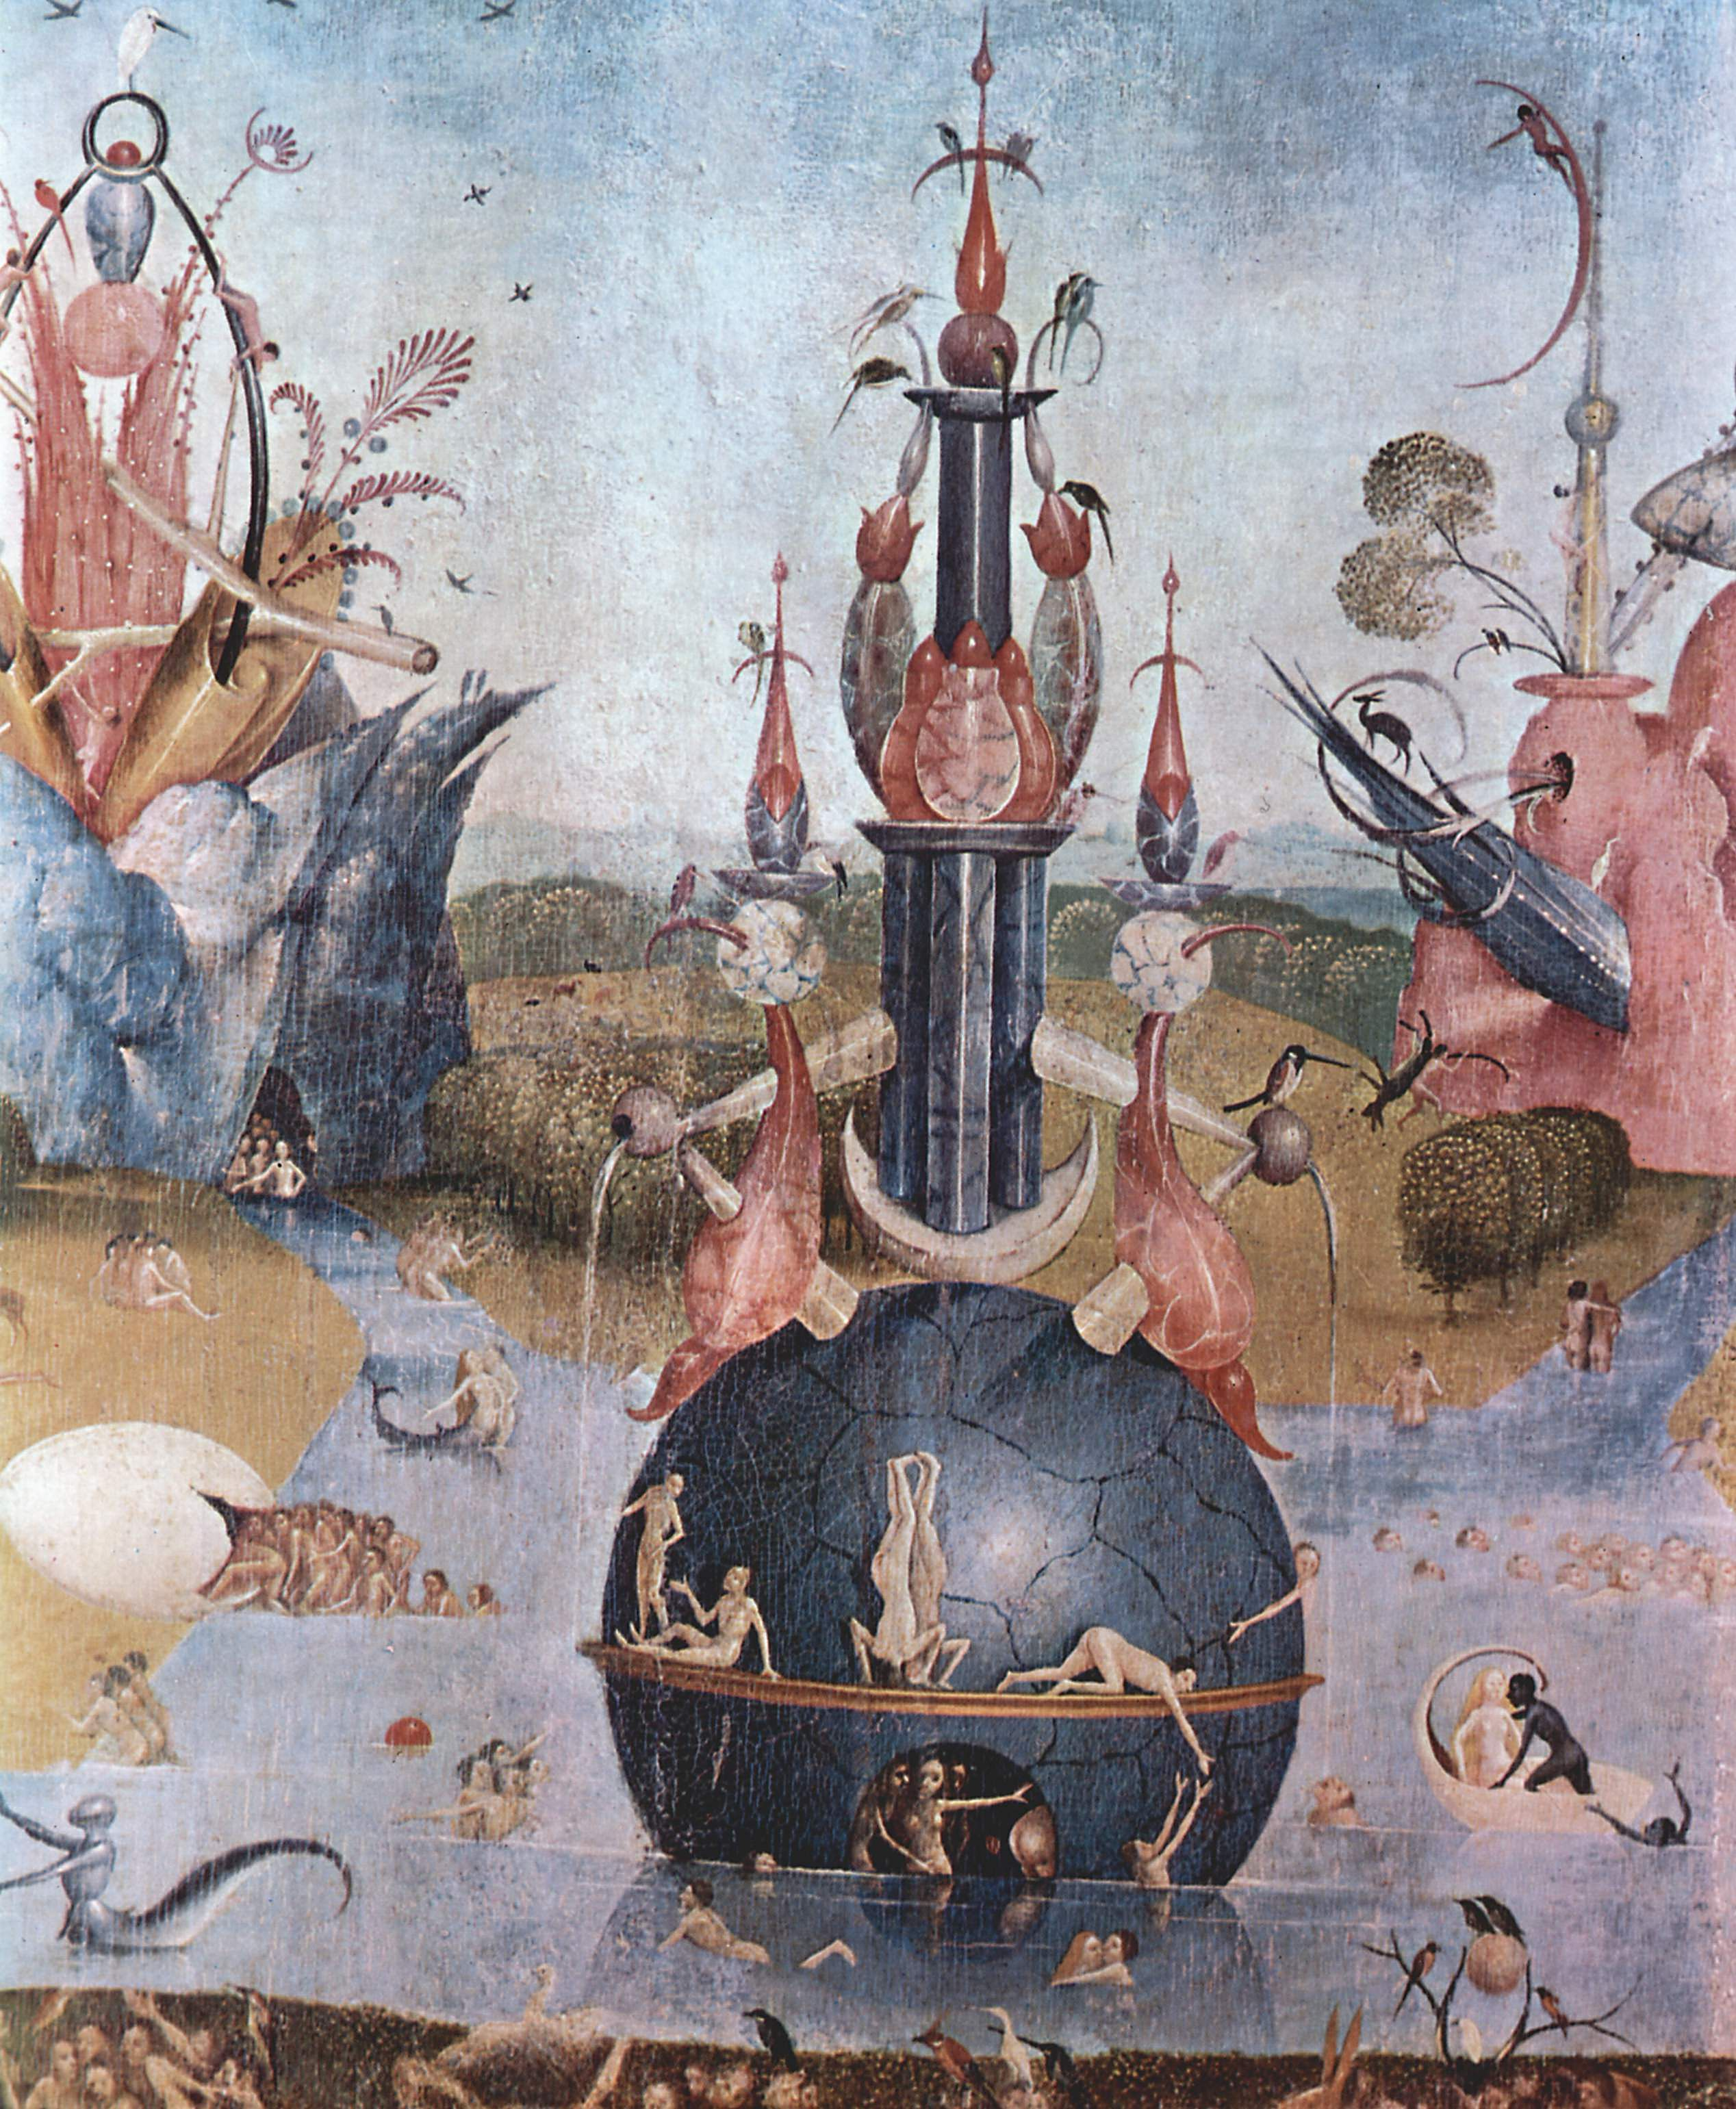 Hieronymus Bosch Giardino Delle Delizie The Garden Of Earthly Delights Detail 1460 1516